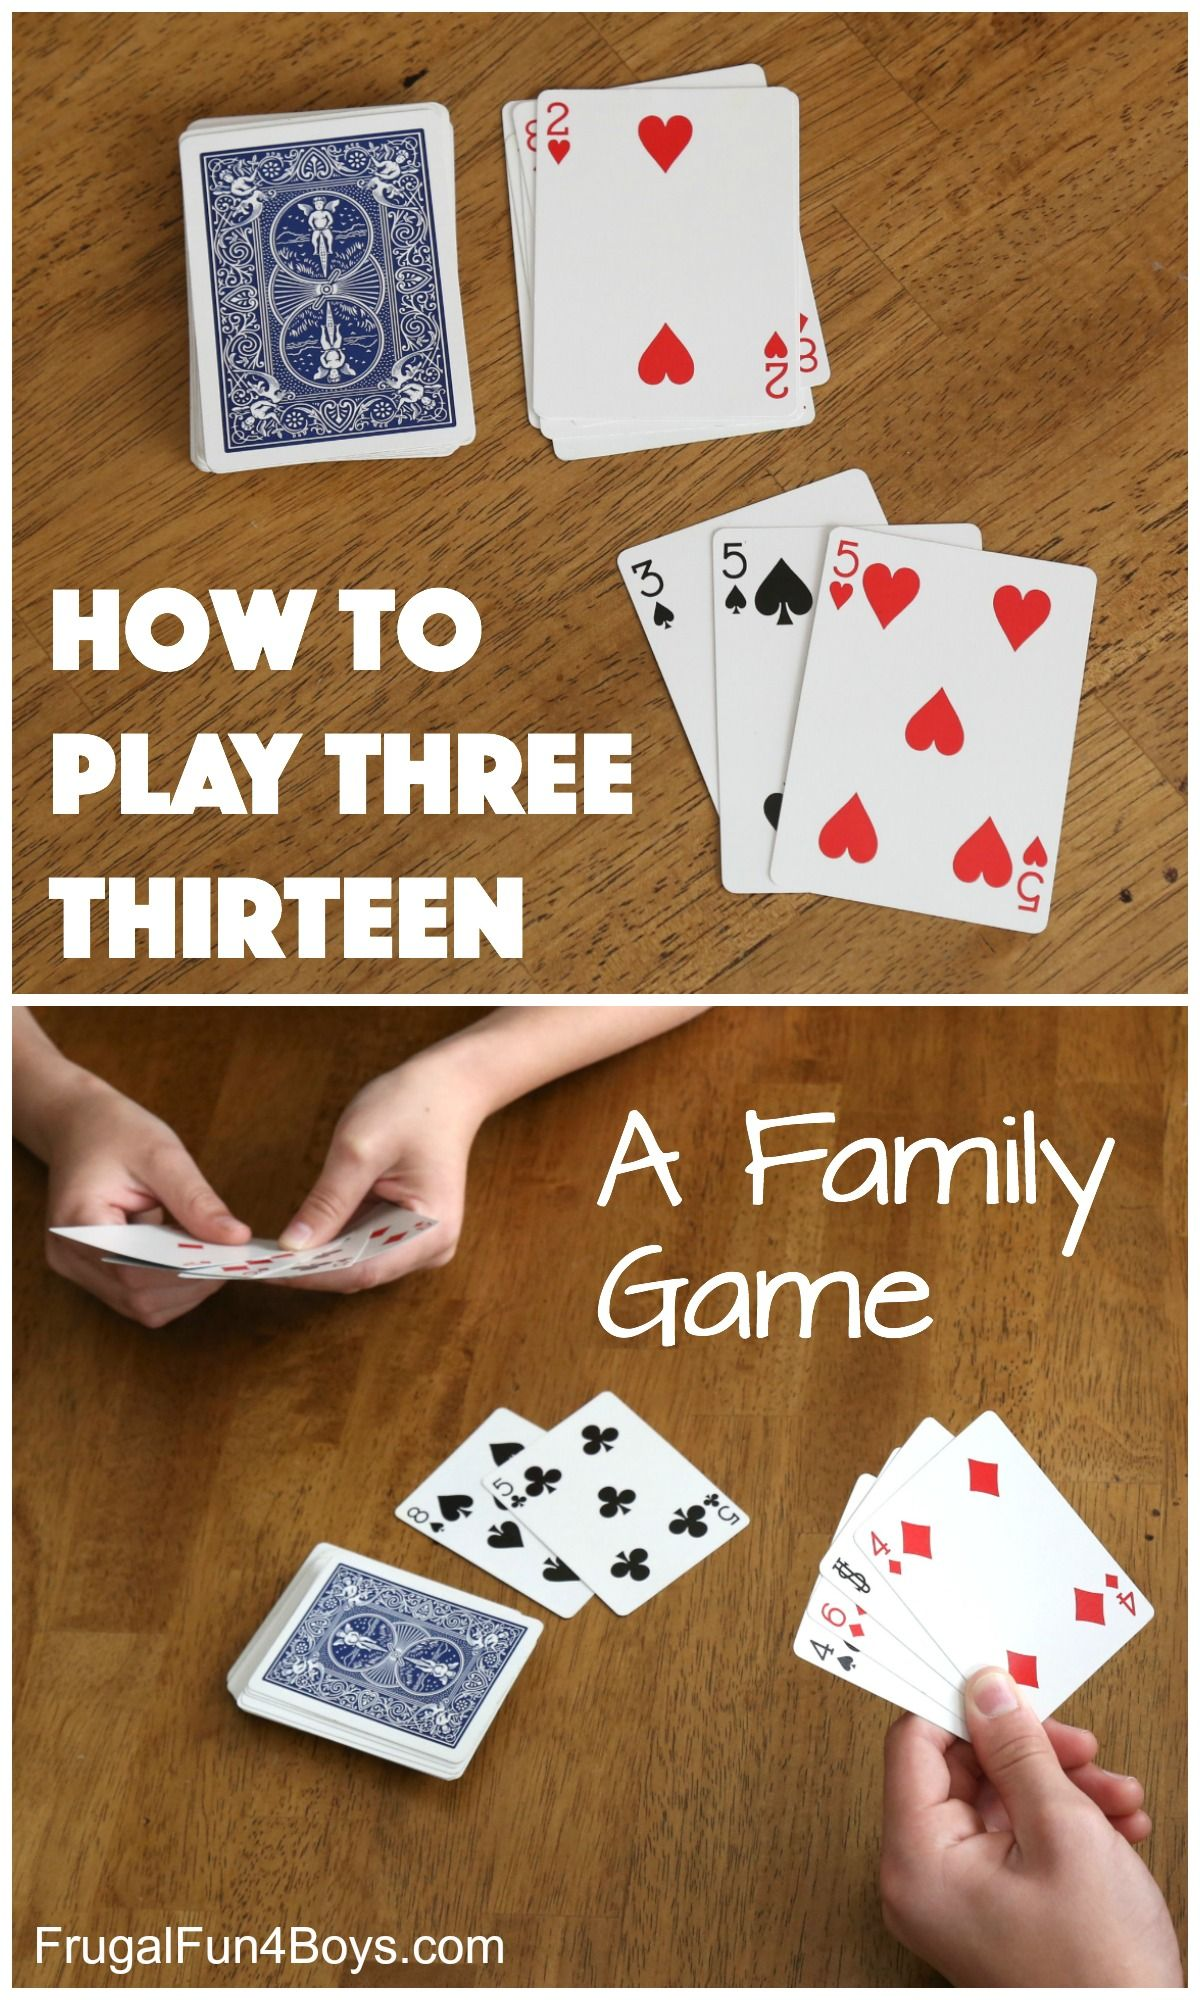 How to learn to play cards